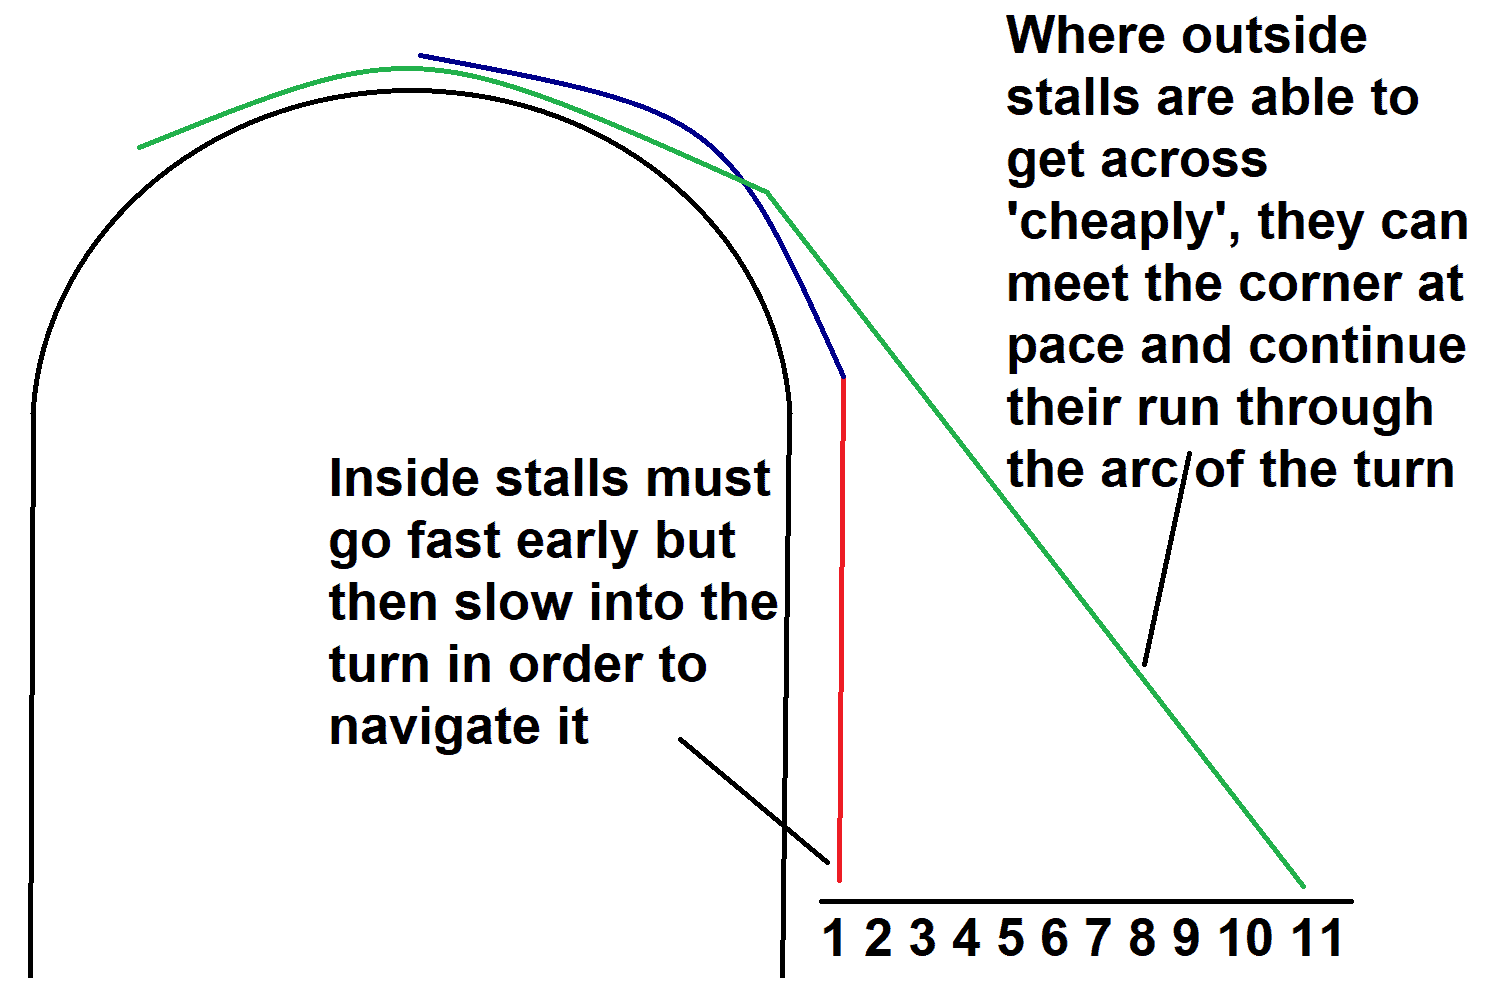 The impact of stall position on speed into the first turn